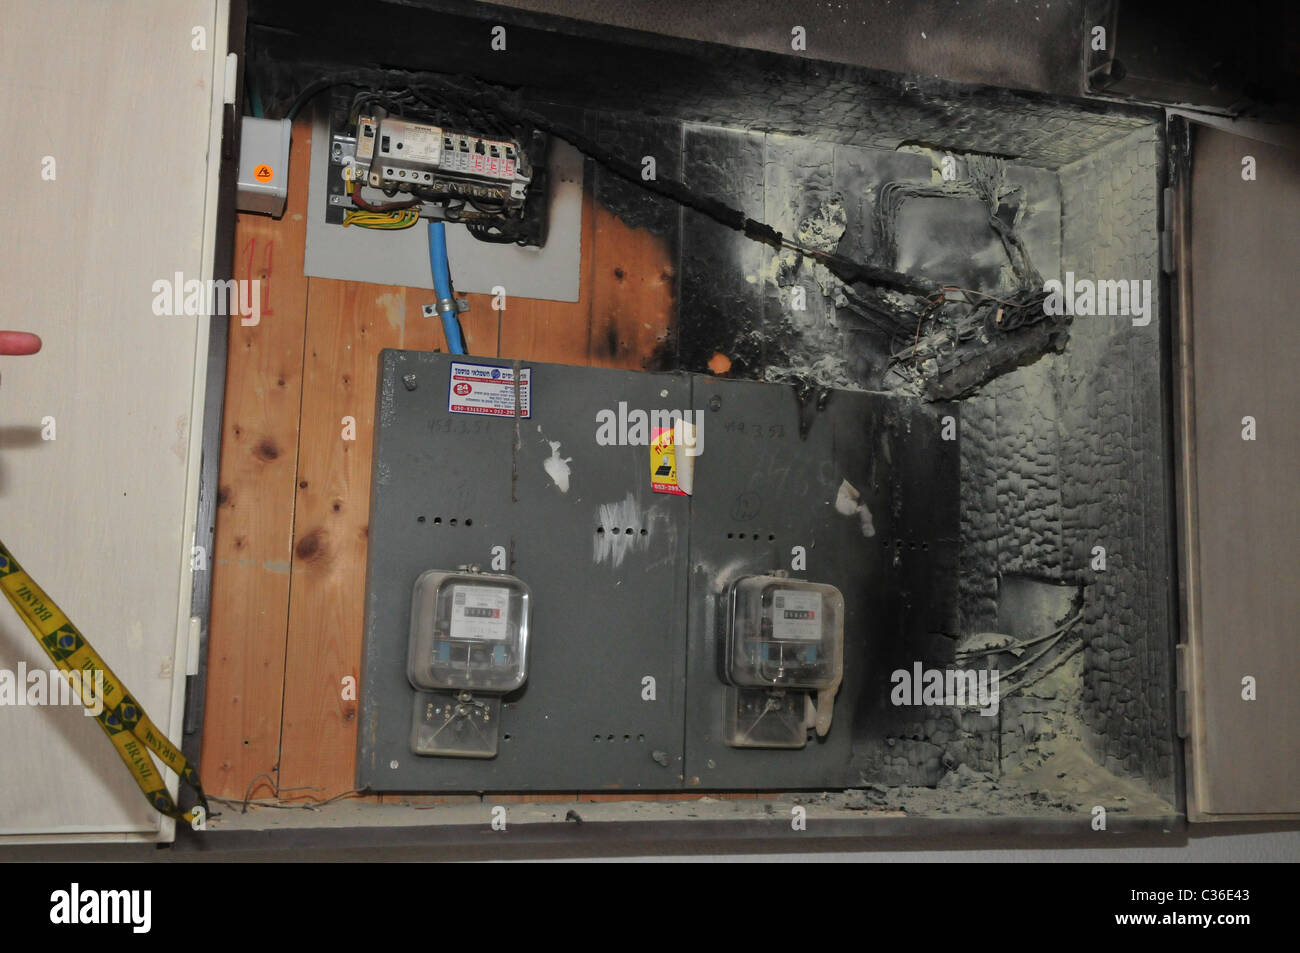 A Fire Broke Out In A Household Electrical Fuse Box Flames